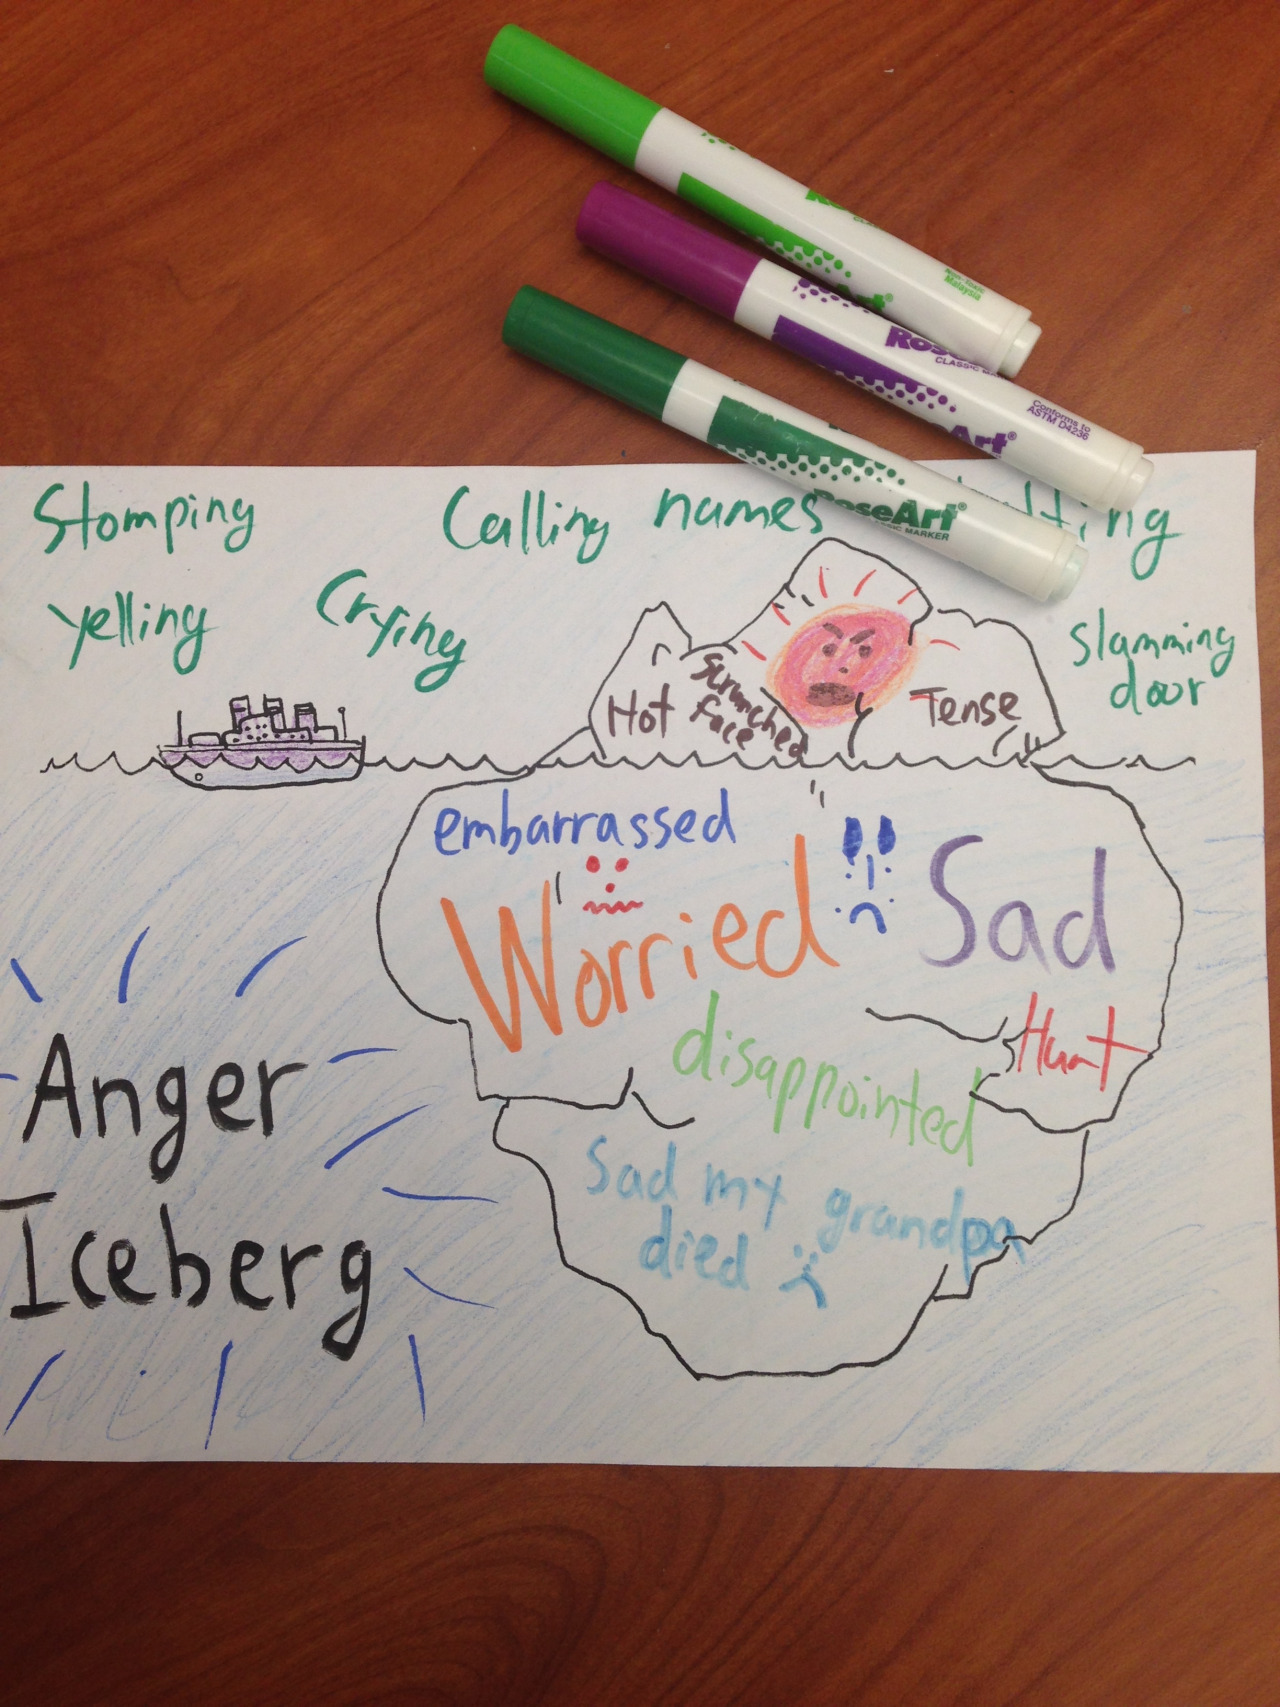 Anger Iceberg Creative Social Worker And The